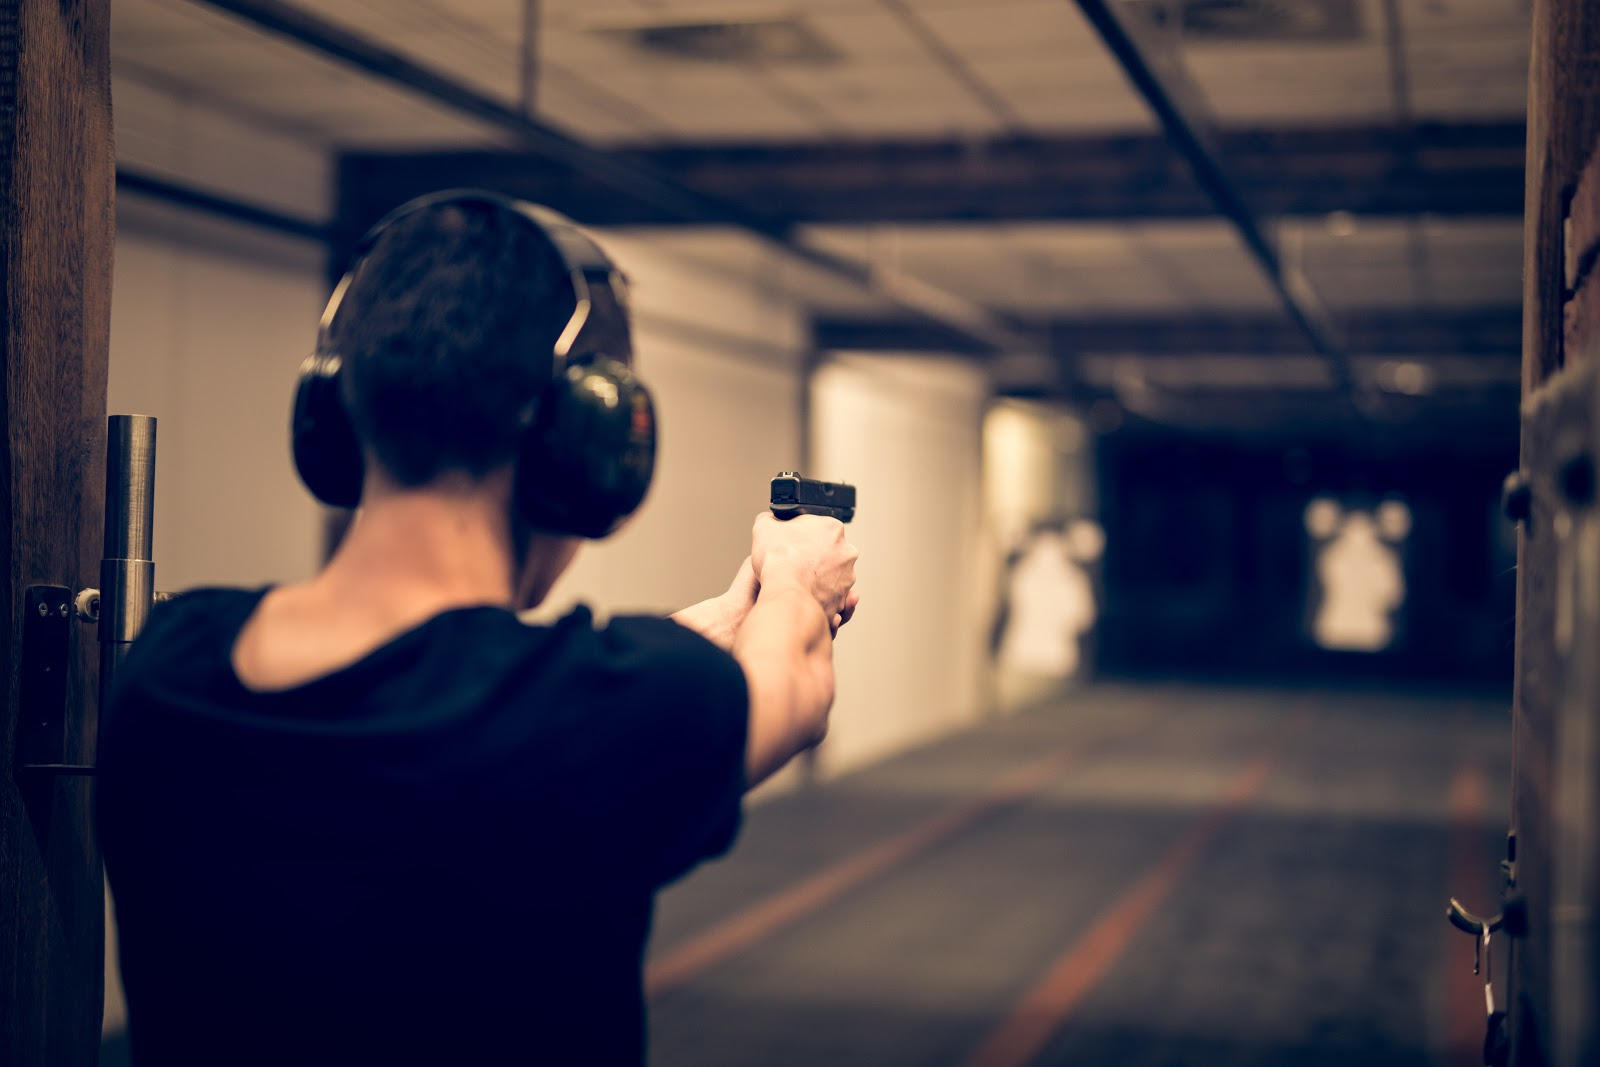 man aiming a pistol downrage at a shooting range with hearing protection